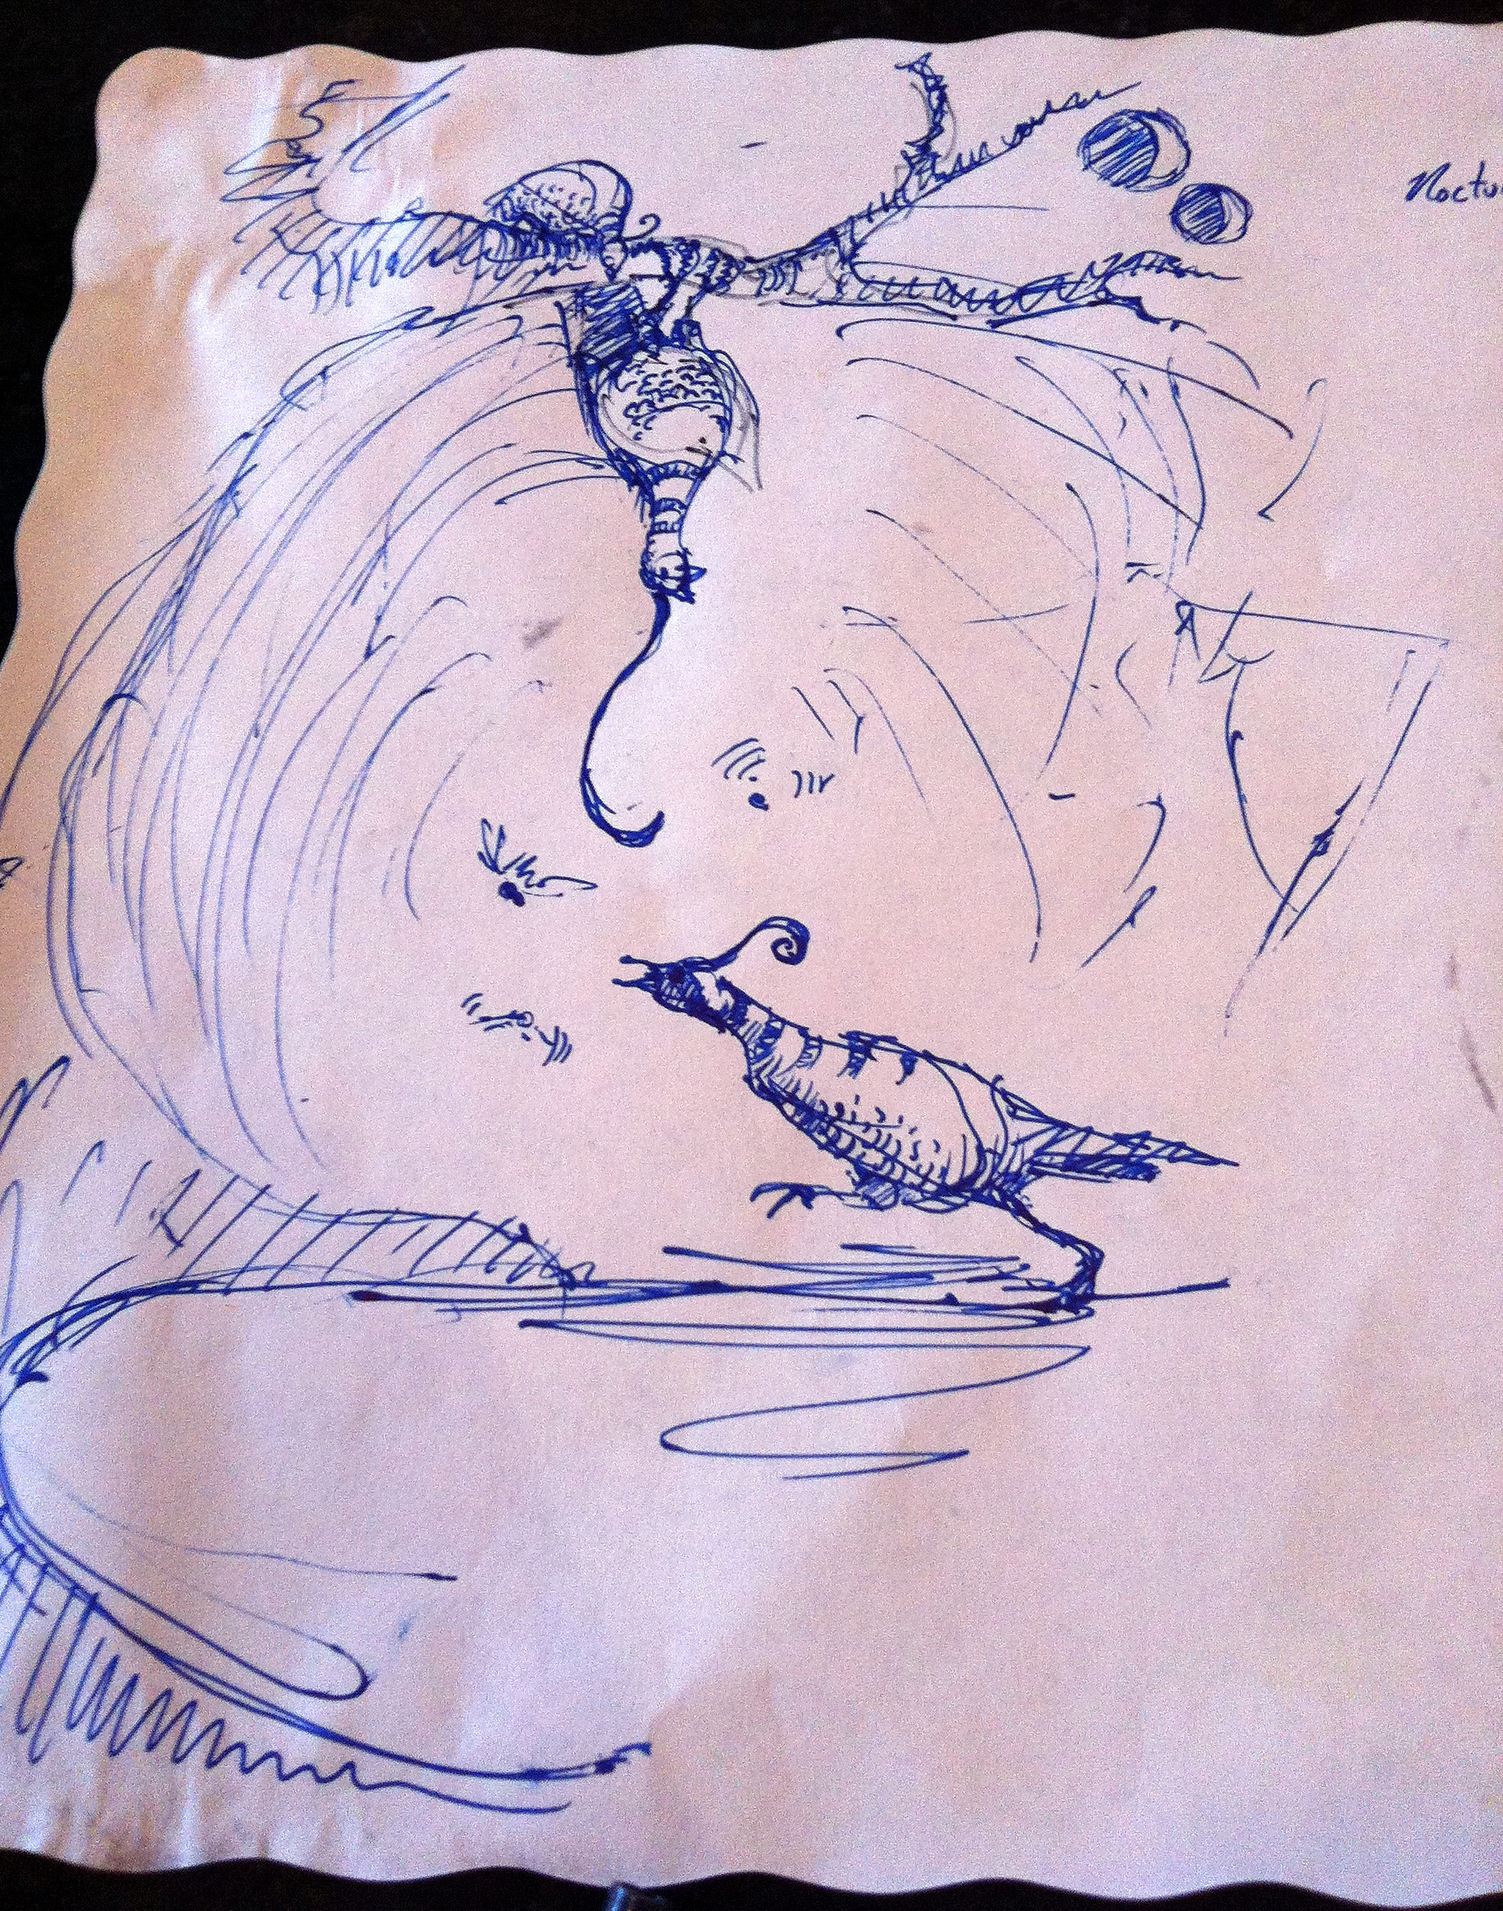 The original sketch for the first post, drawn on a placemat at the Hollywood Diner